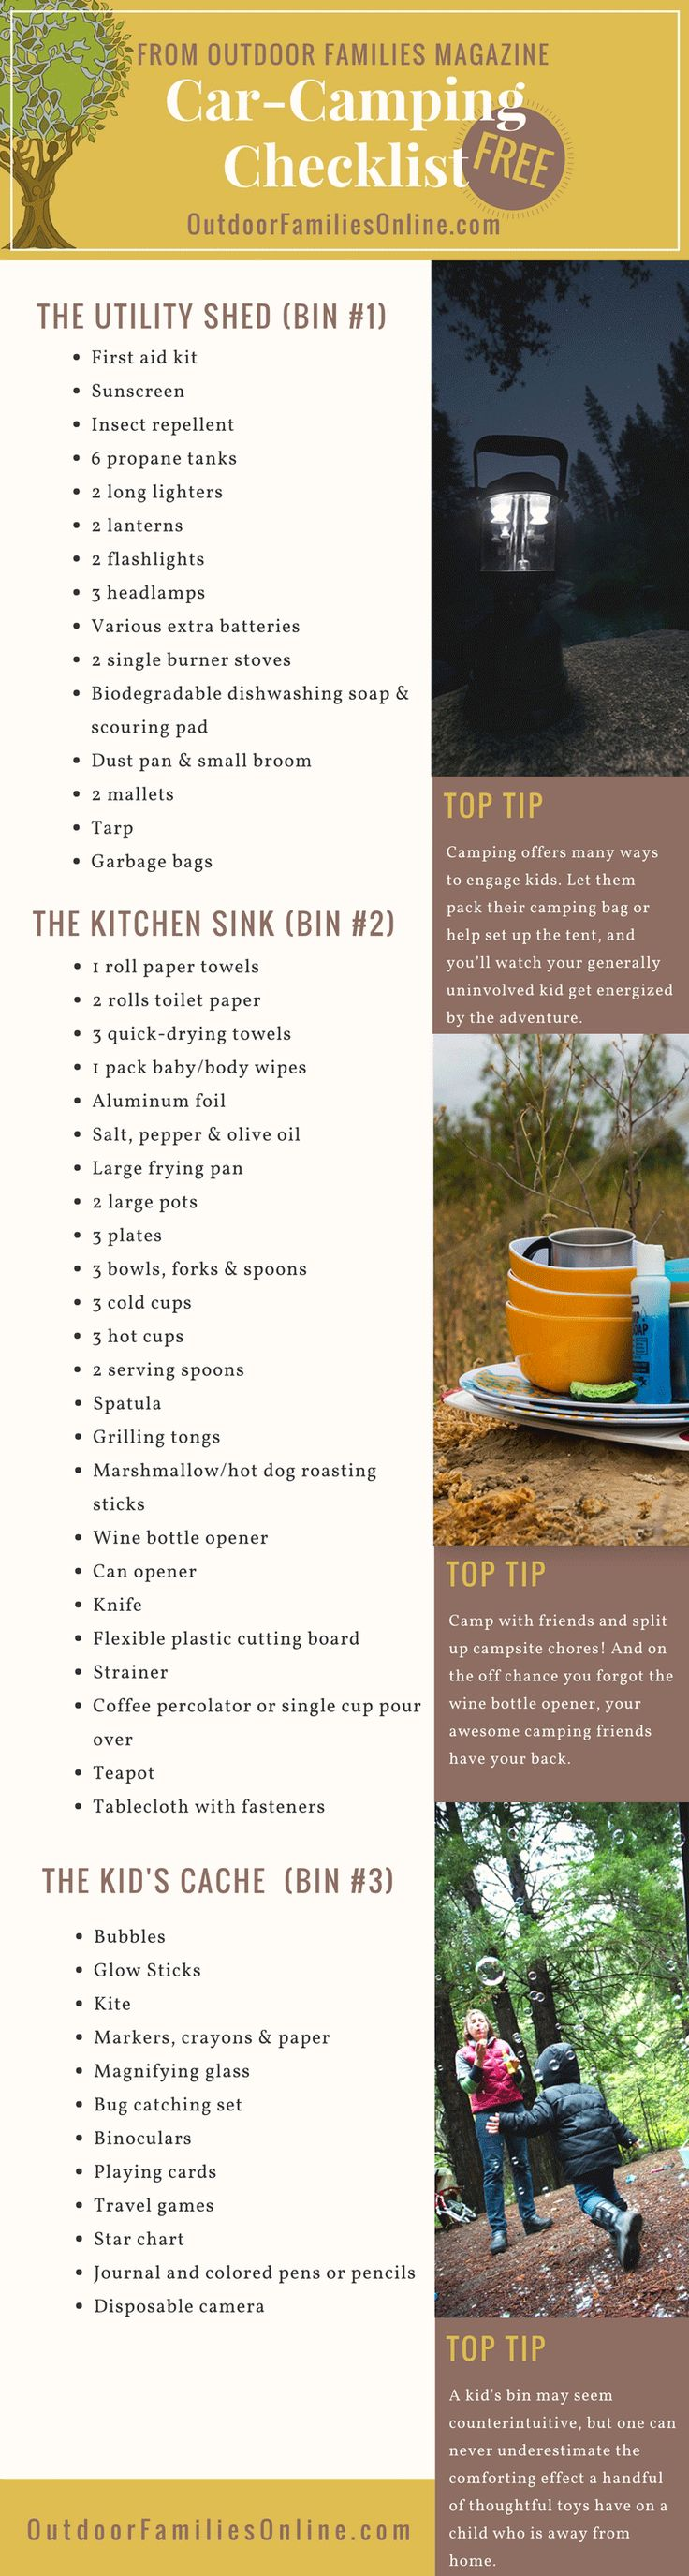 Print Outdoor Families Magazines Free Car Camping Checklist